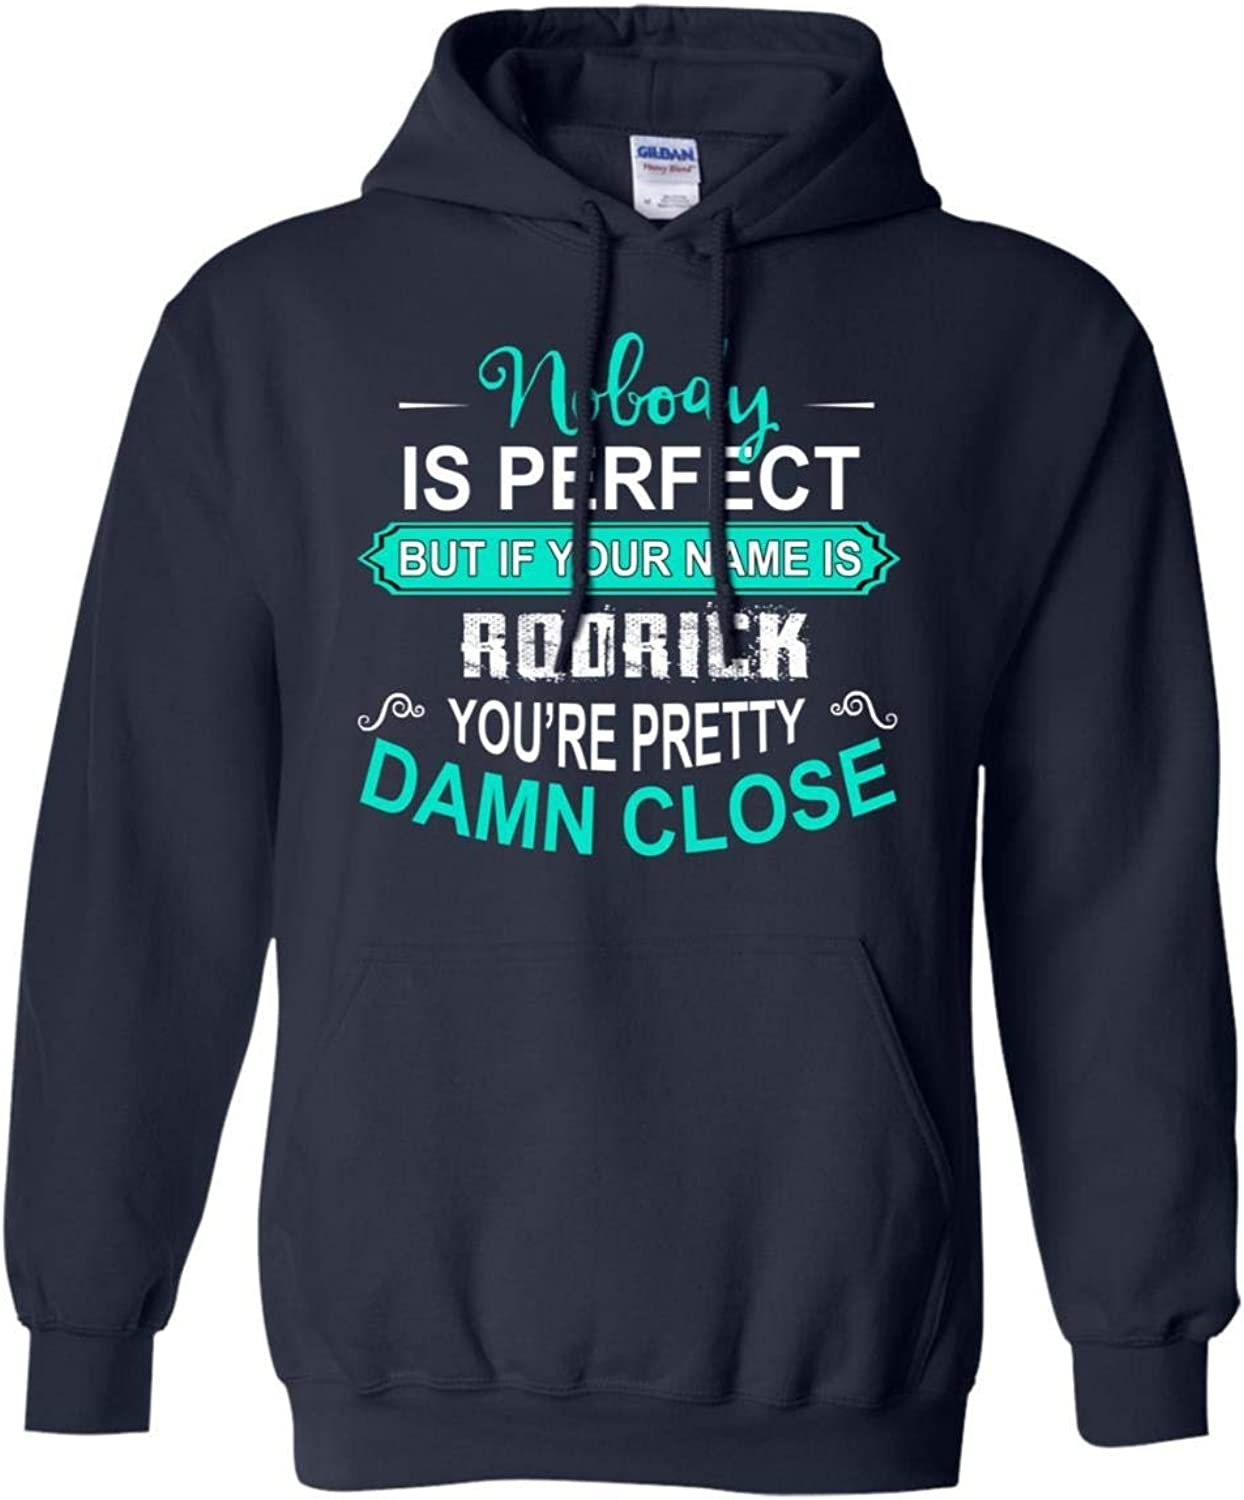 Tee Shine Nobody is Perfect But If Your Name is Rodrick You're Pretty Damn Close Funny Hoodie Sweatshirt for Men Xmas Present